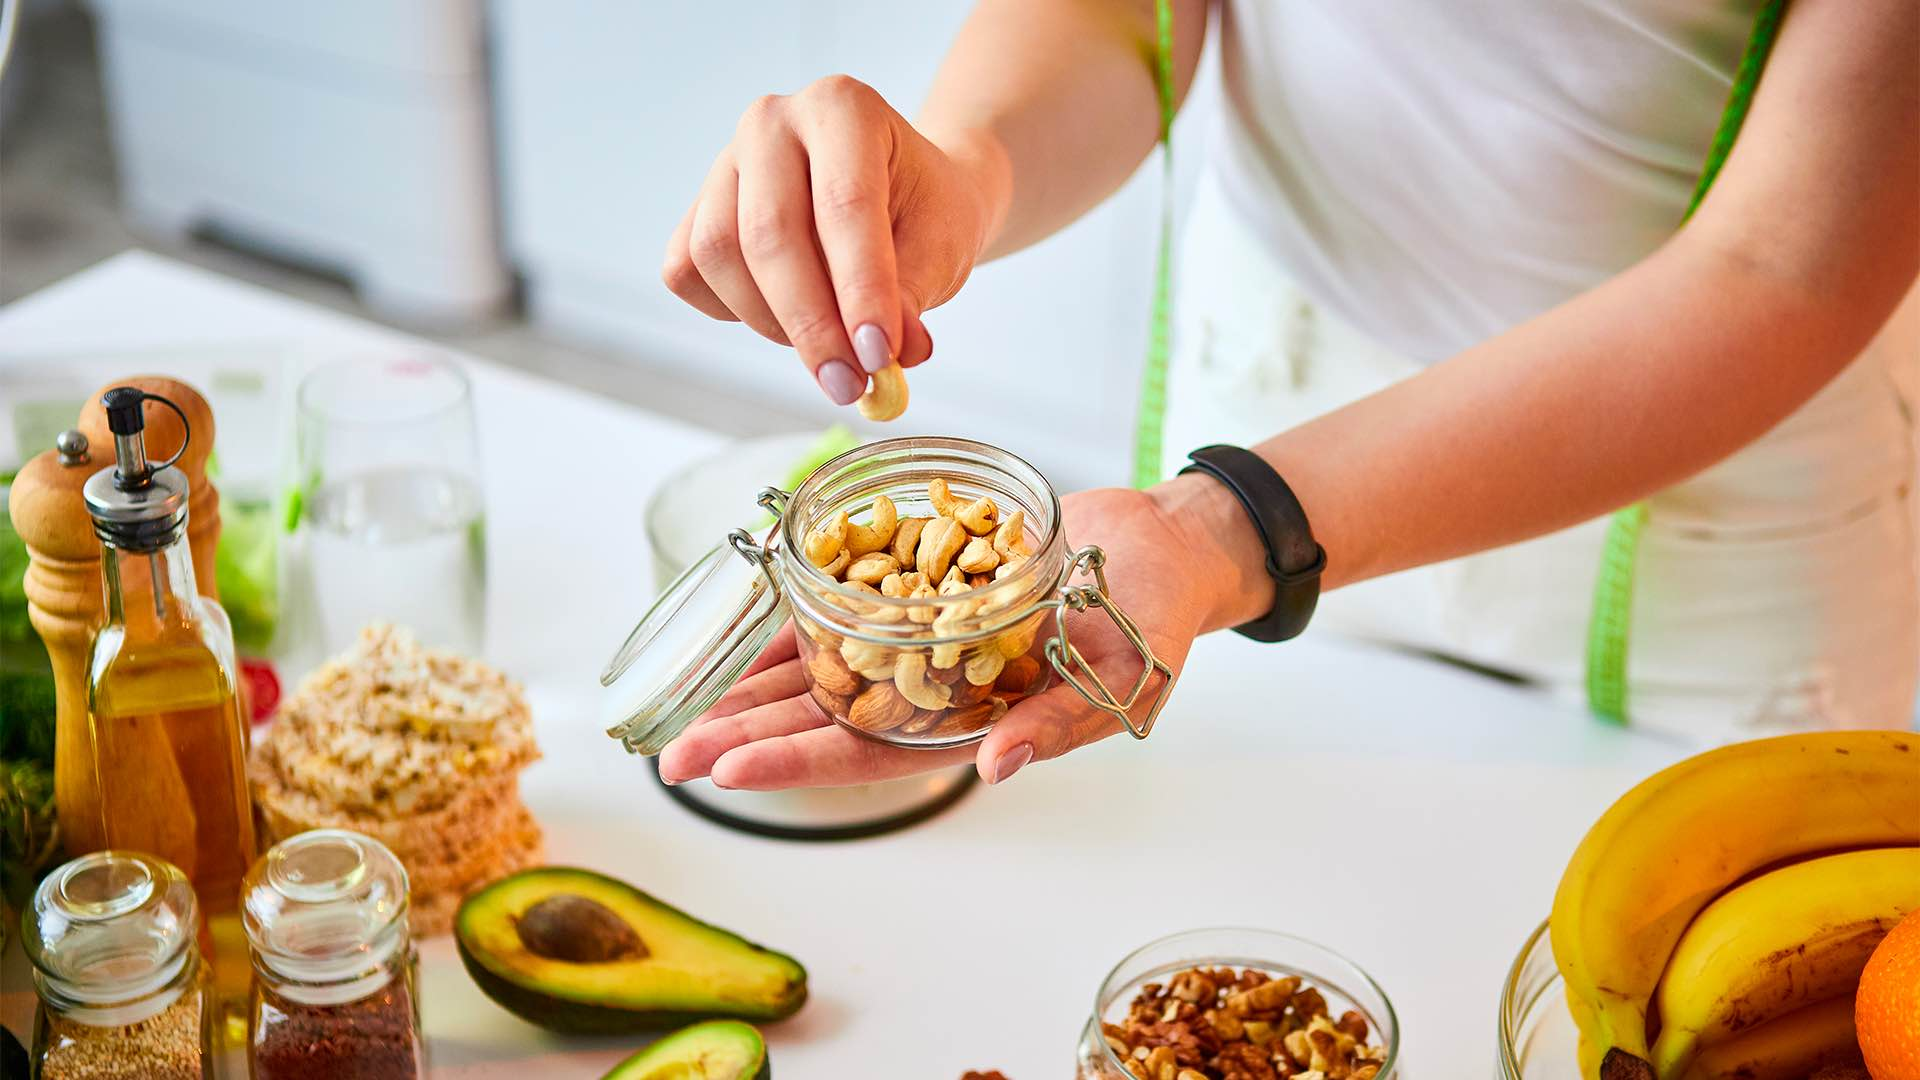 Why nuts are said to be healthy